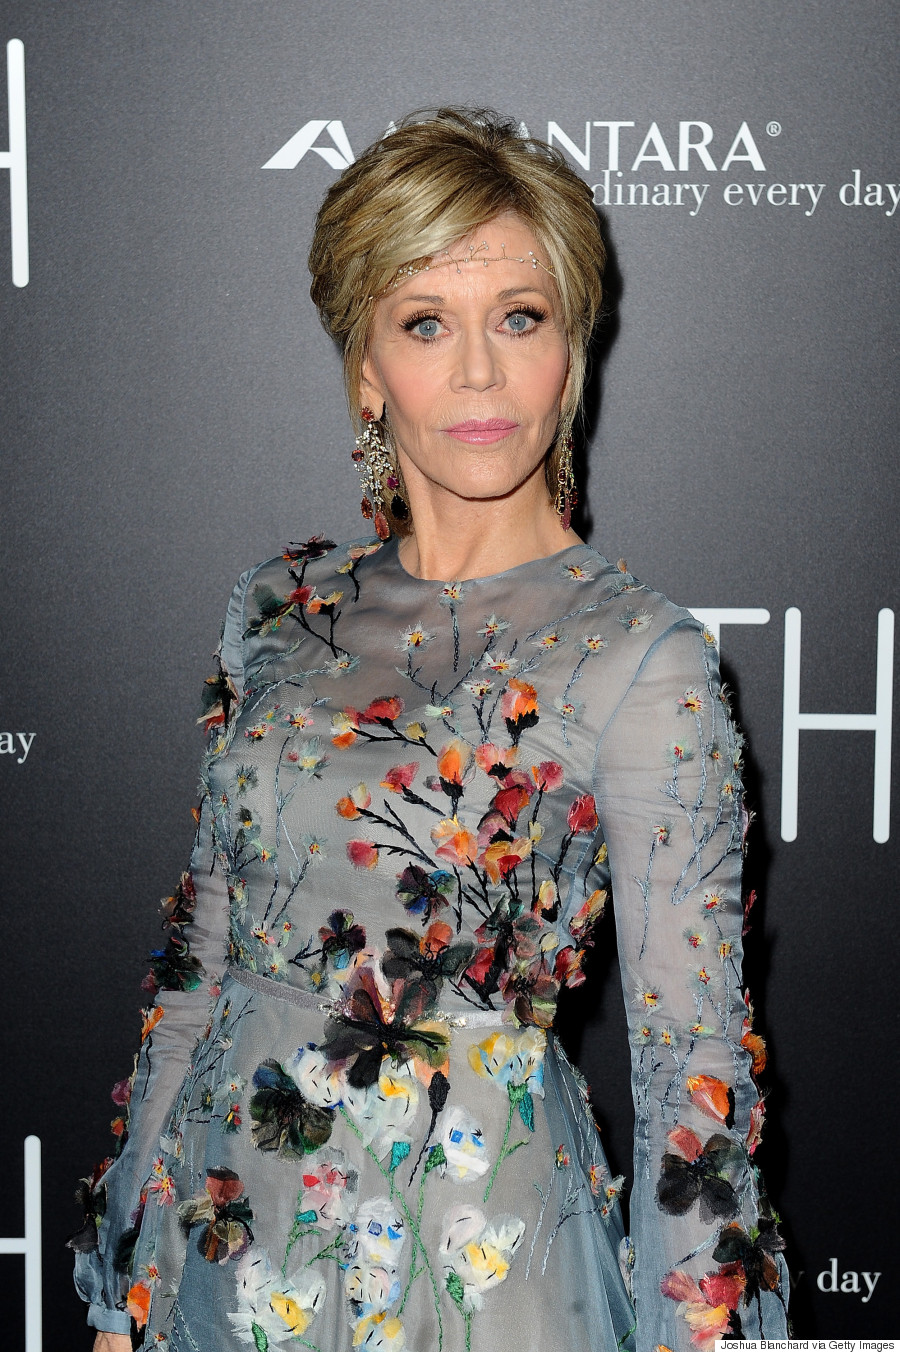 Jane Fonda Looks Incredible In Valentino And Delicate Headband On 'Youth' Red Carpet